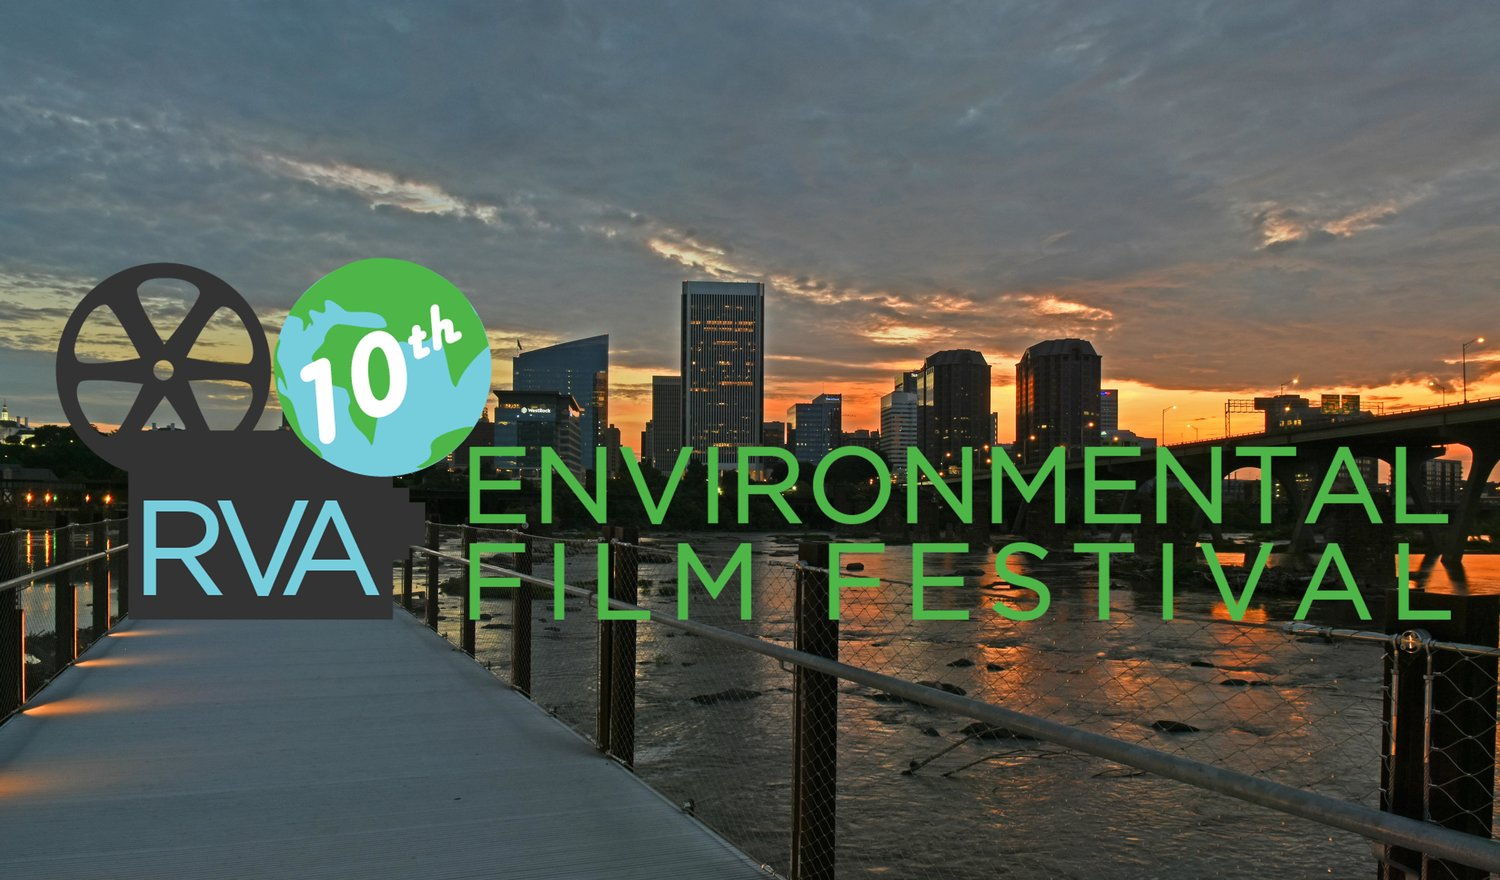 10th RVA Environmental Film Fest Coming Feb. 7